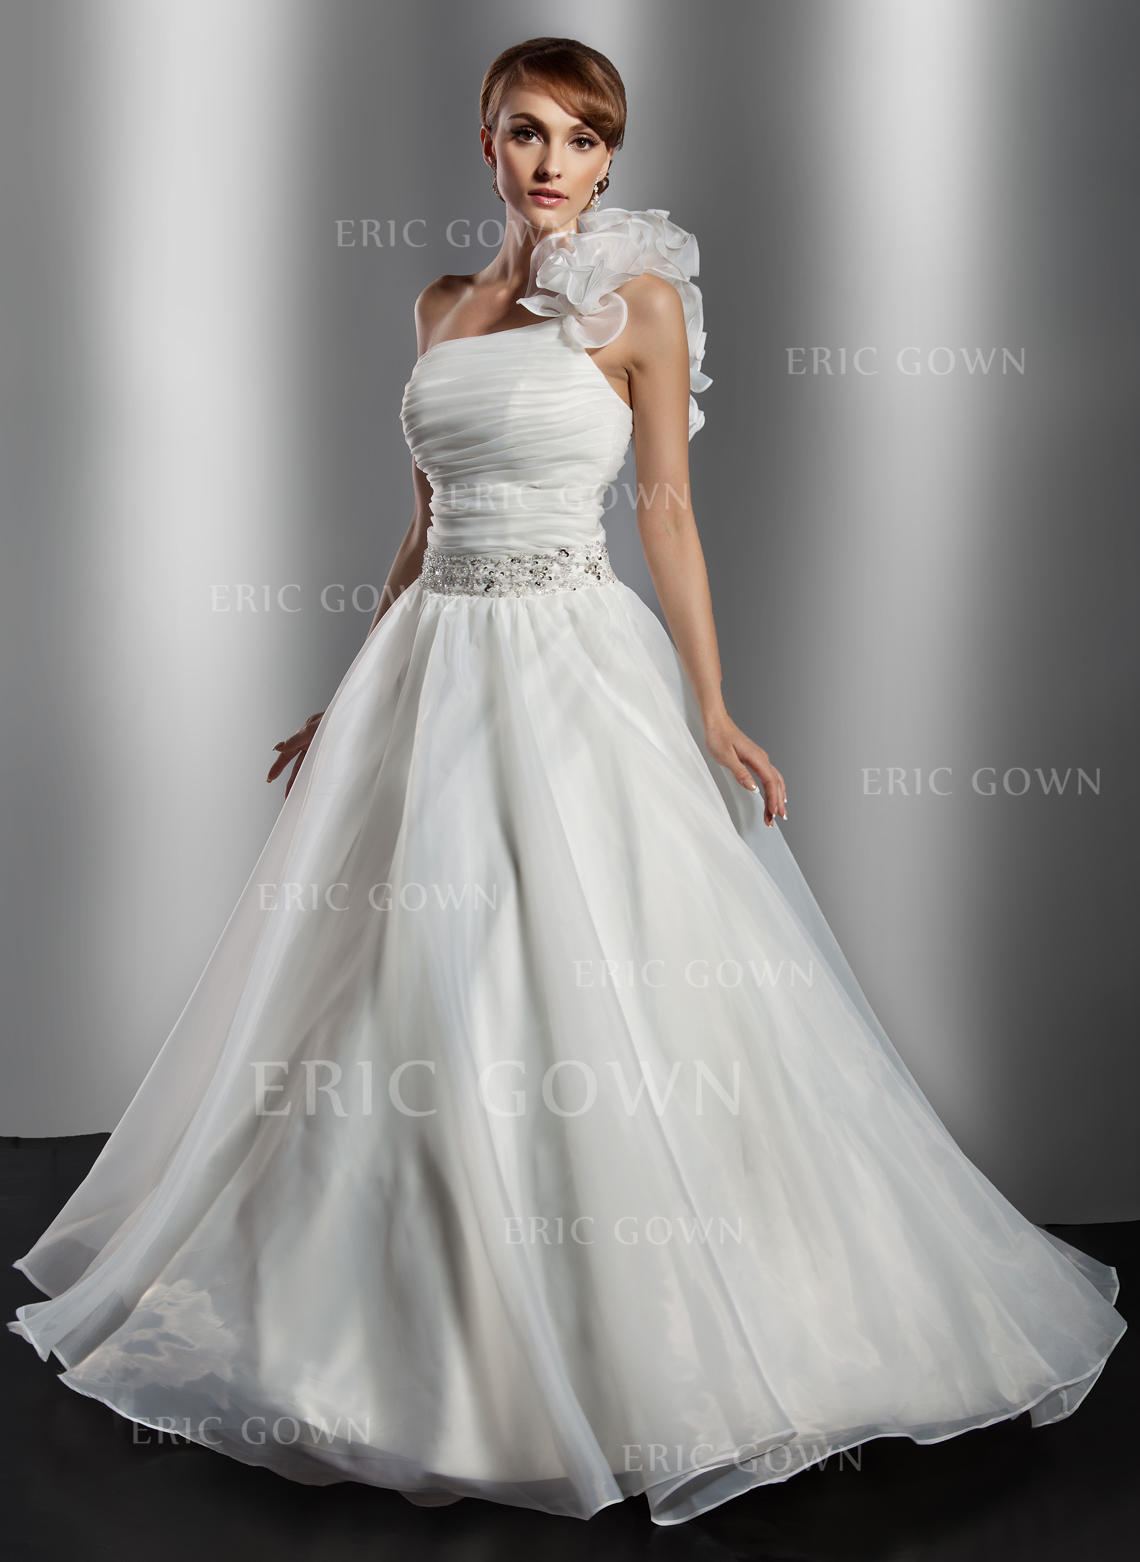 Delicate One Shoulder Ball-Gown Wedding Dresses Floor-Length Organza  Sleeveless (002211363). Loading zoom 117c55354